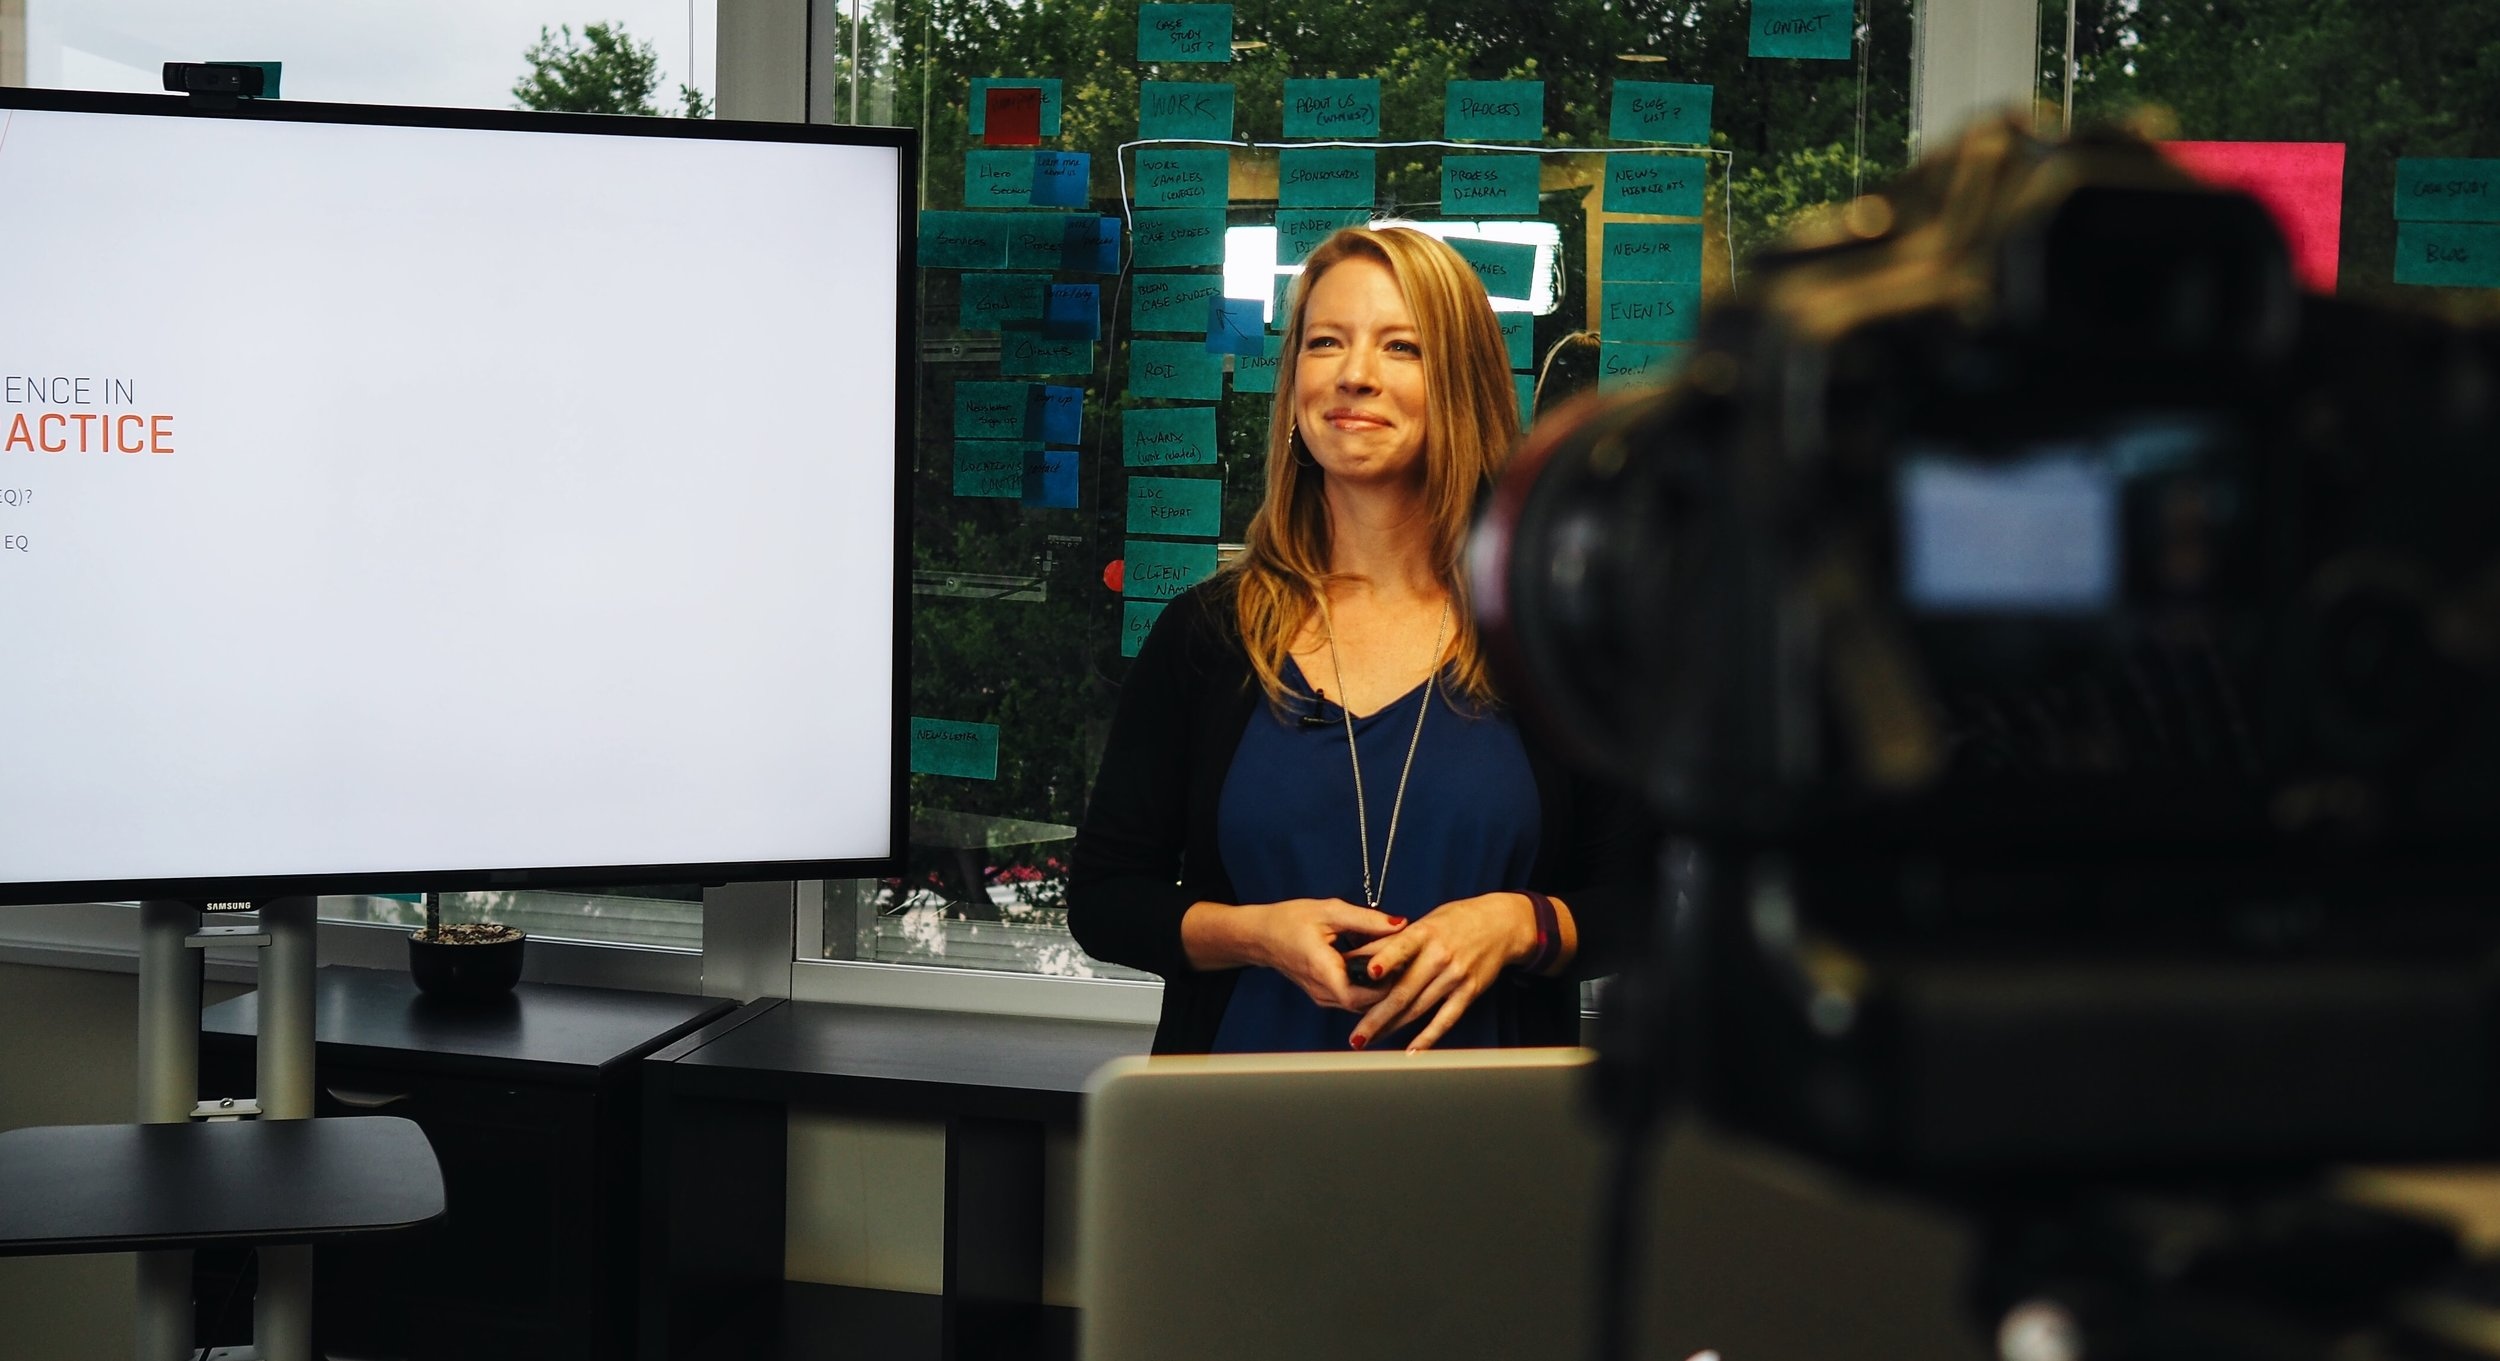 Senior Experience Strategist Shannon Graf is one of the Thought Leaders in projekt202's new video series.